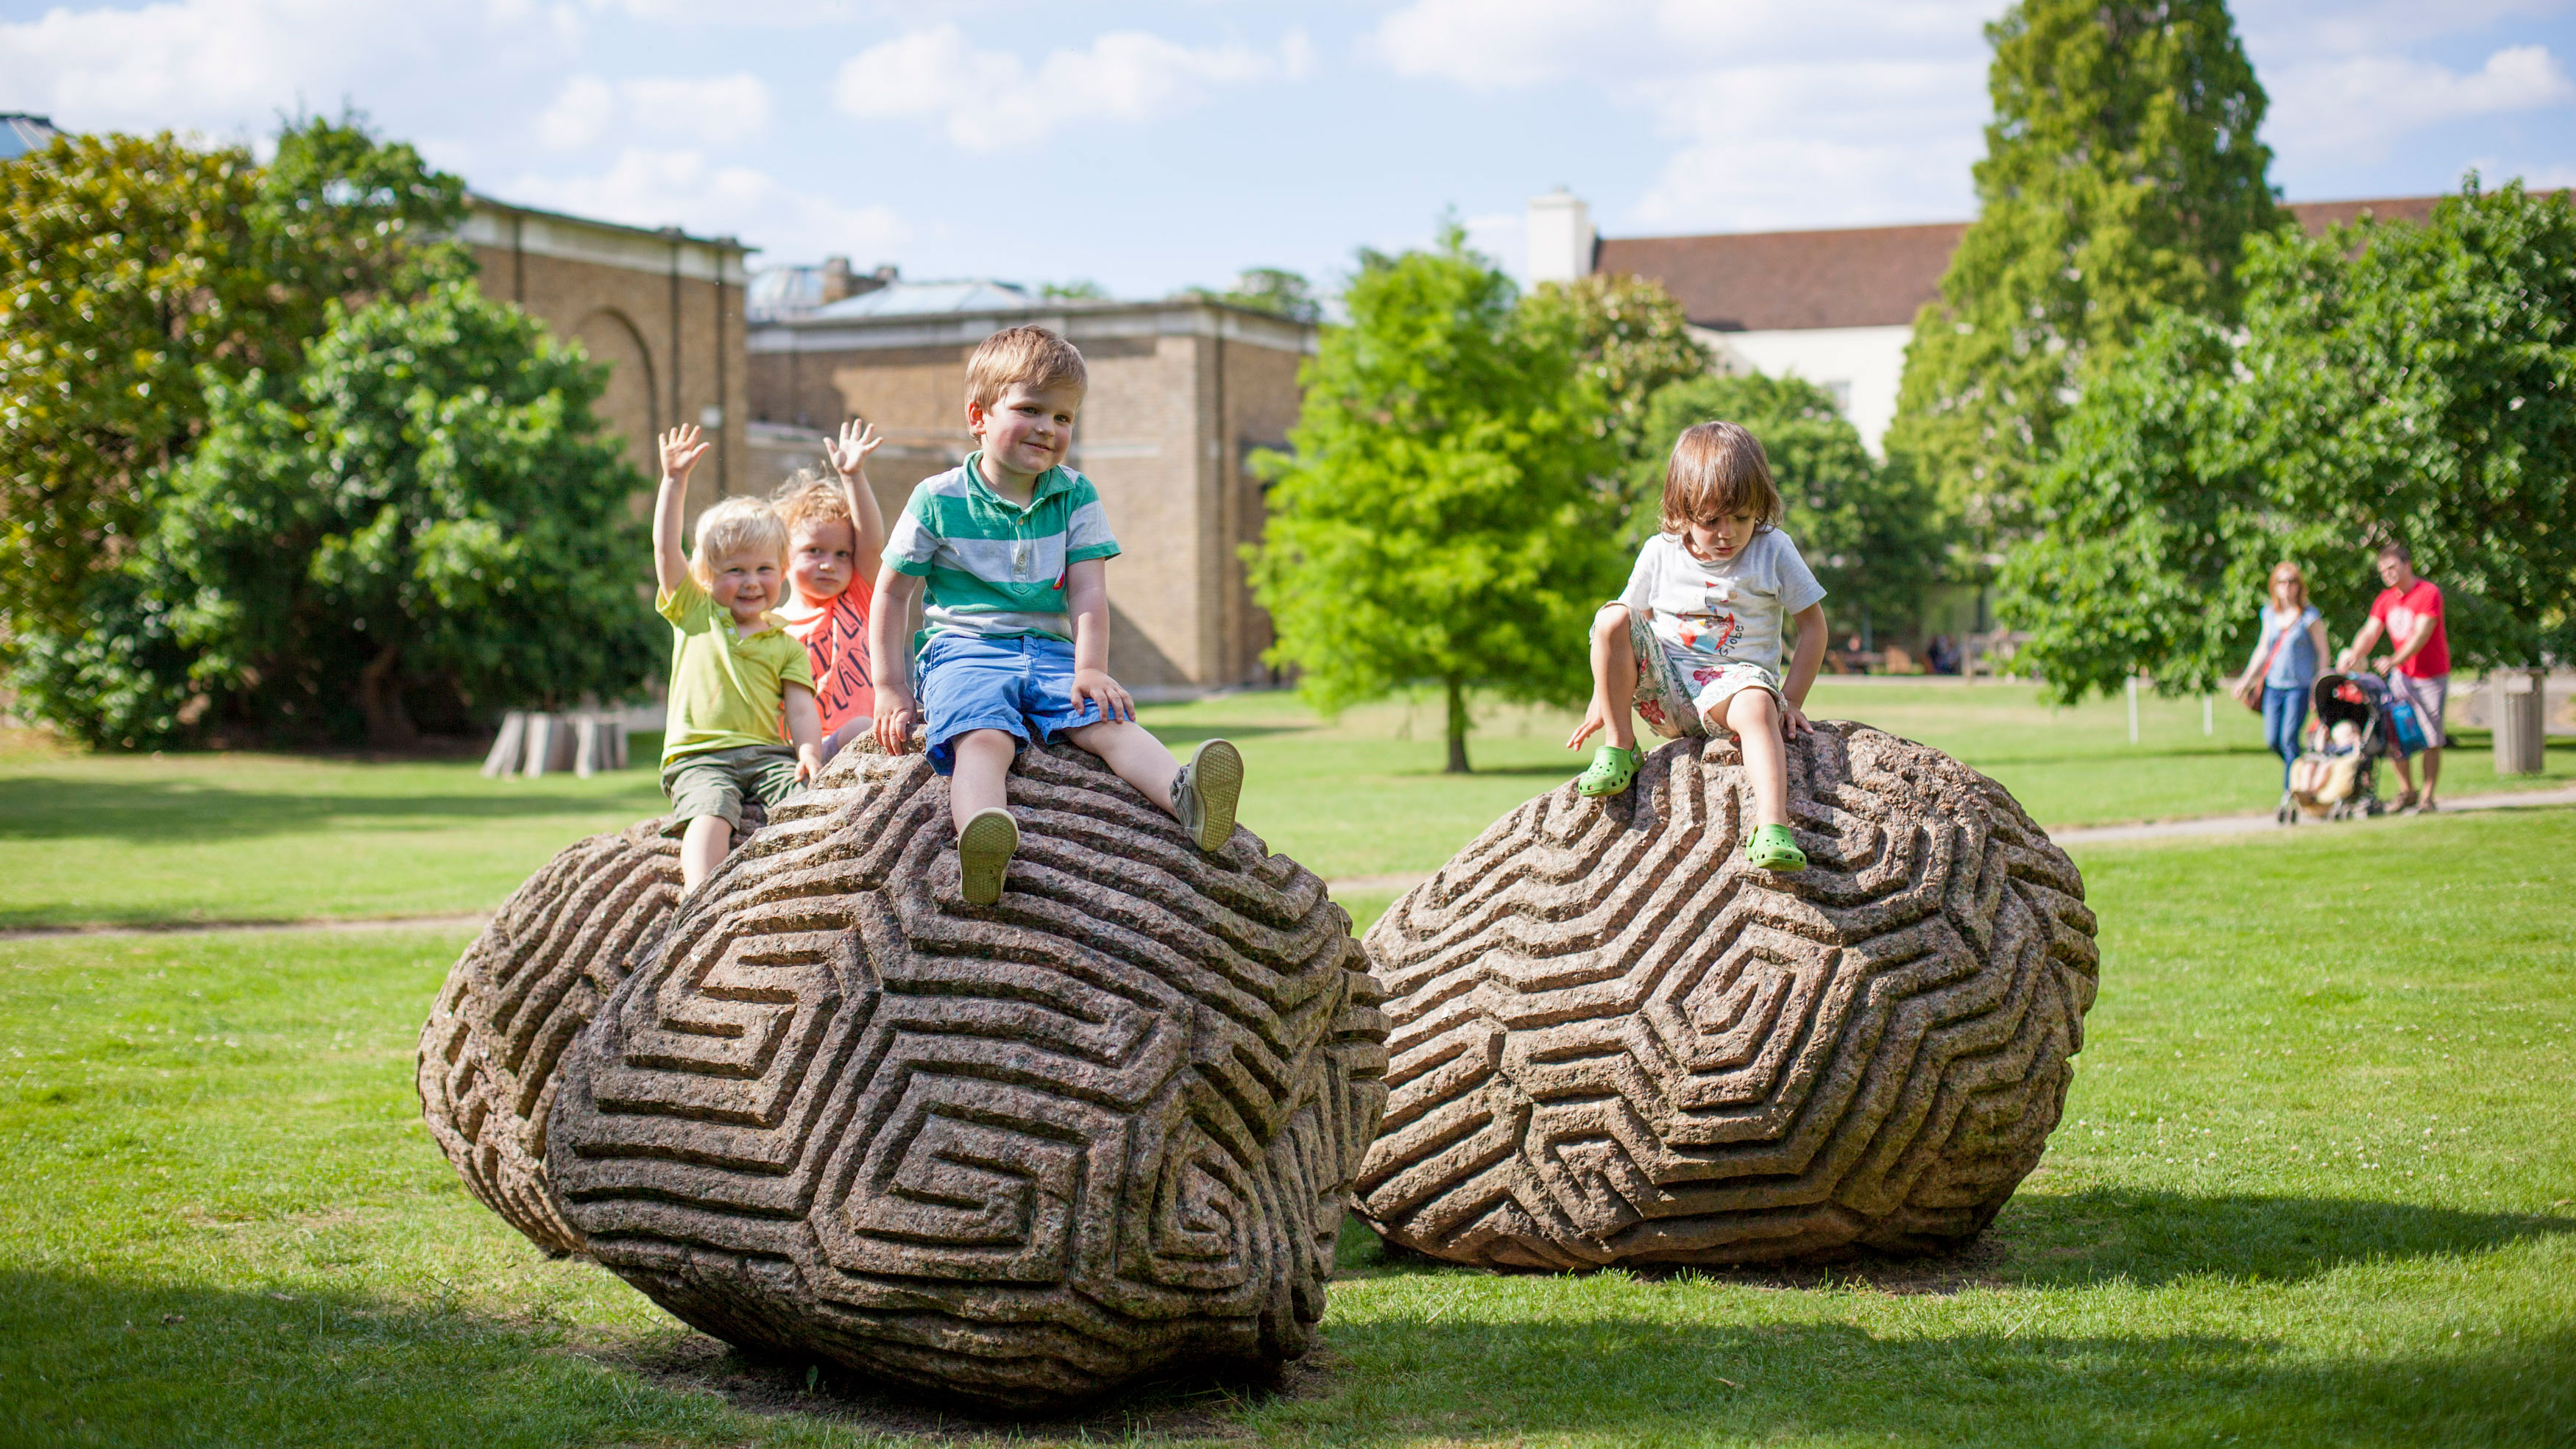 Walking the Dog, contemporary sculpture by Peter Randall Page in the Gallery grounds